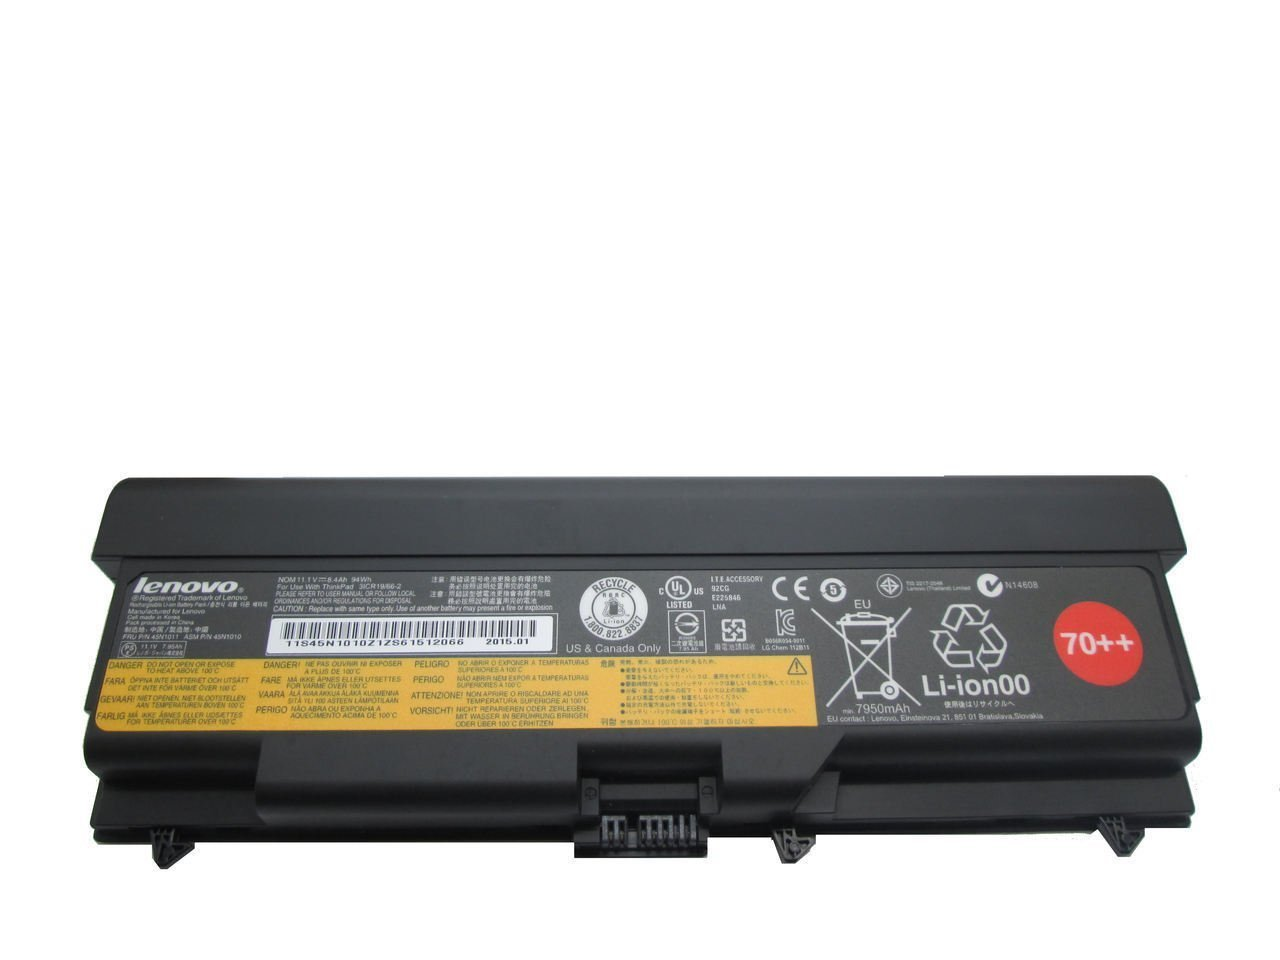 New Genuine Lenovo Thinkpad T430 L420 L520 T530 9 Cell 7950mAh 94Wh Battery 45N1011 by For Lenovo